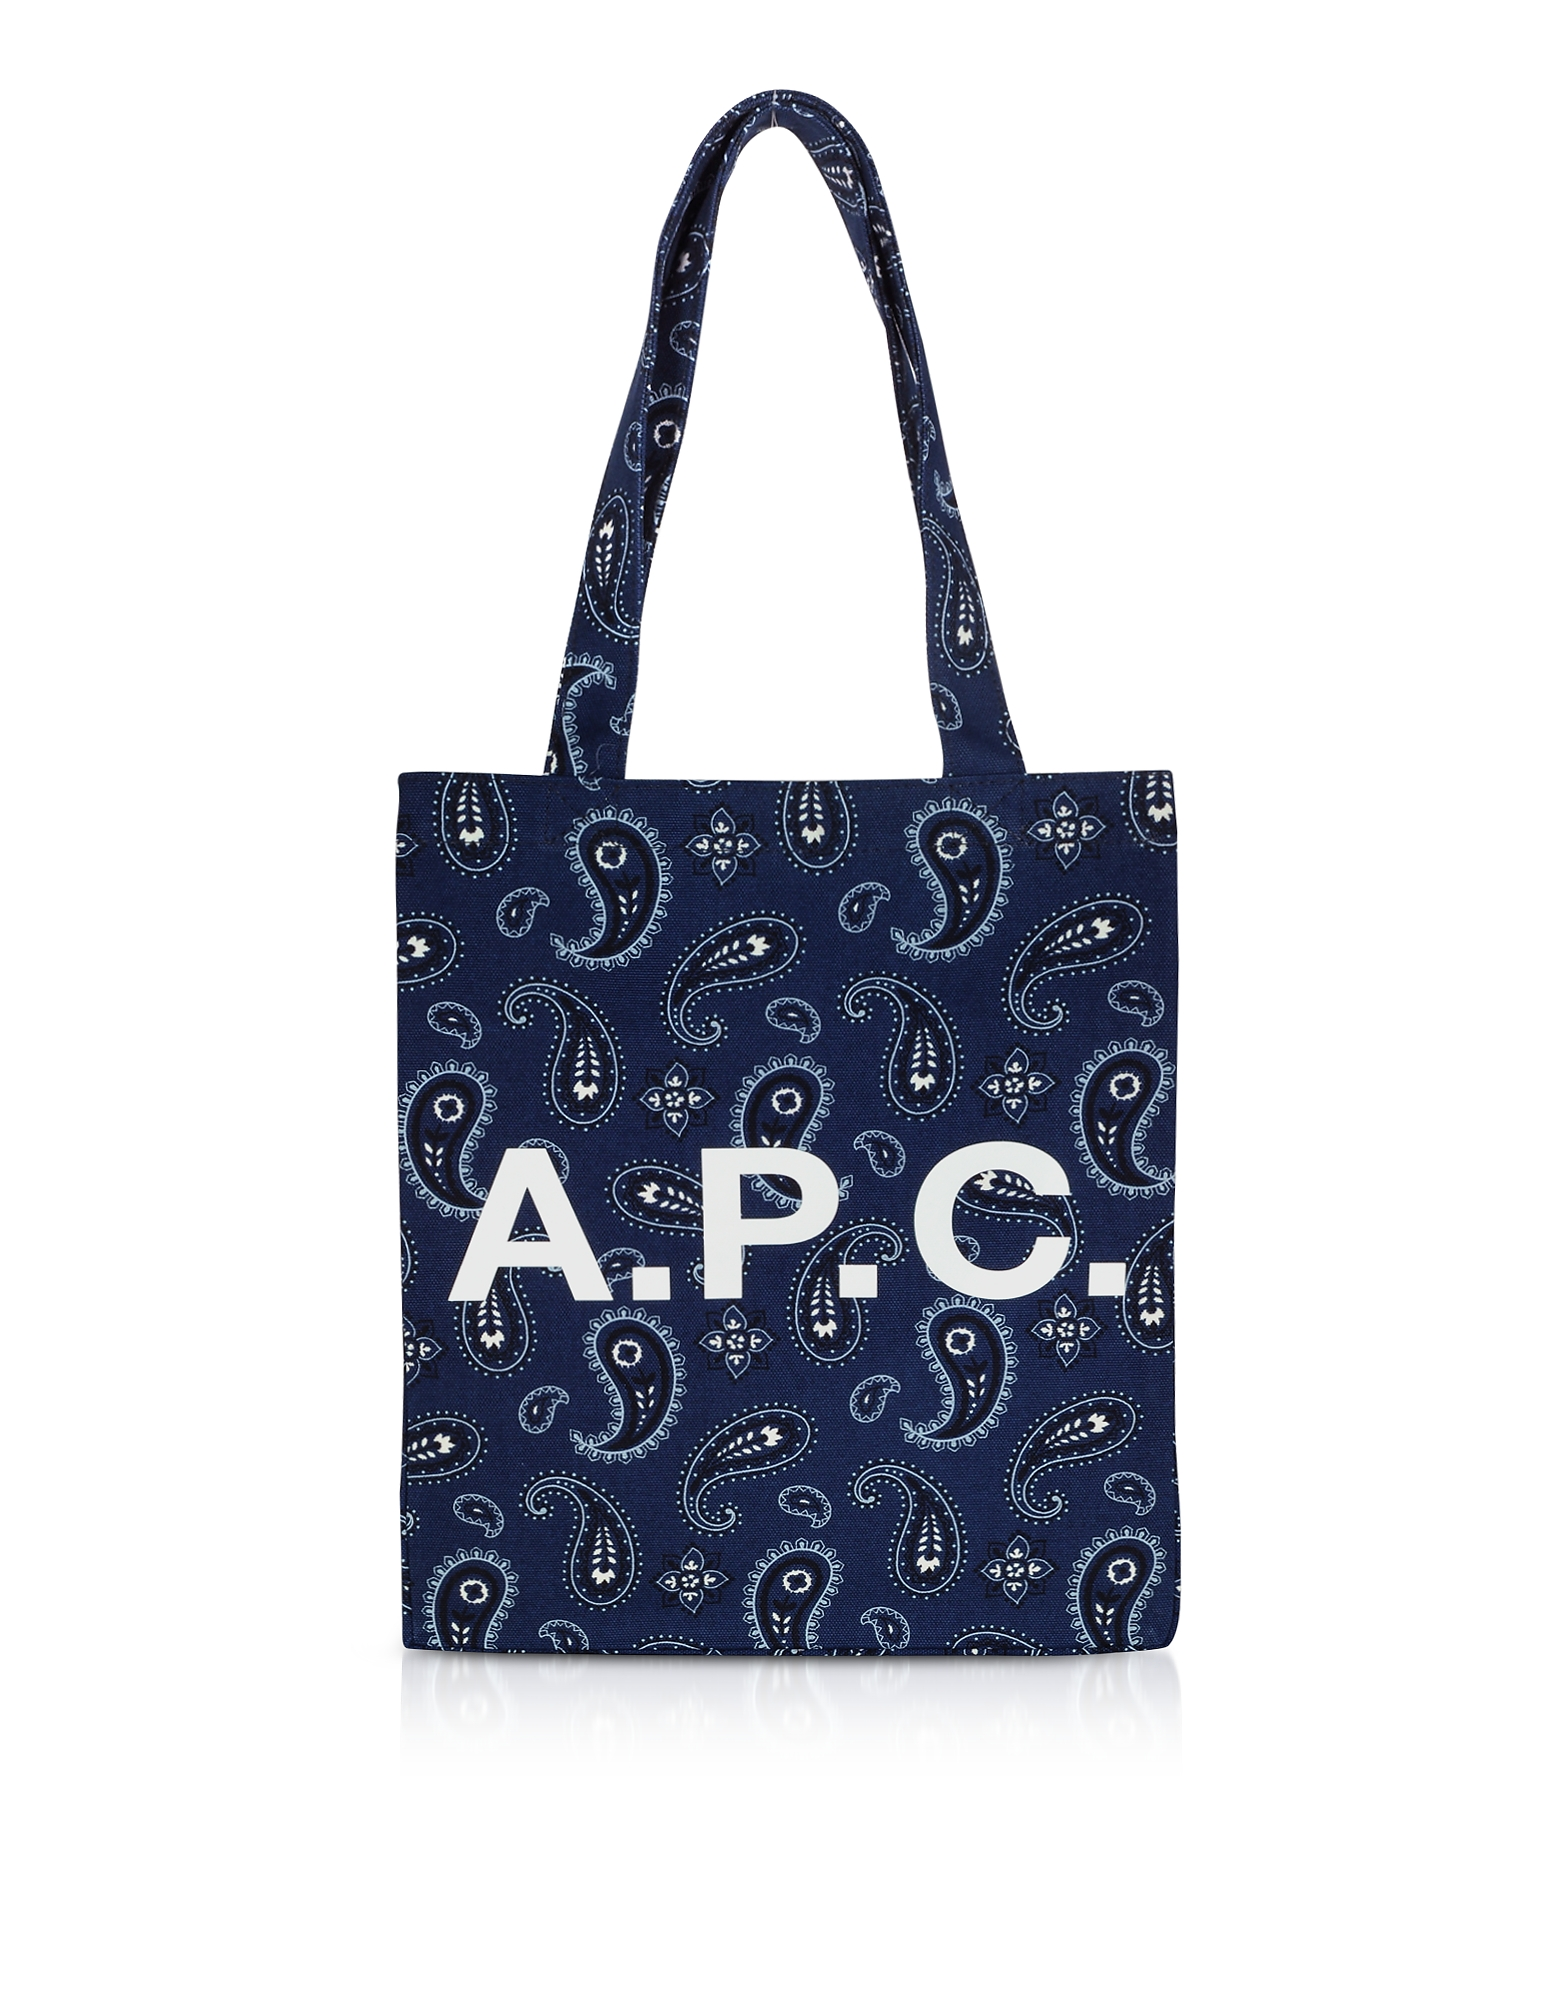 A.P.C. Designer Handbags, Paisley Printed Canvas Lou Tote Bag